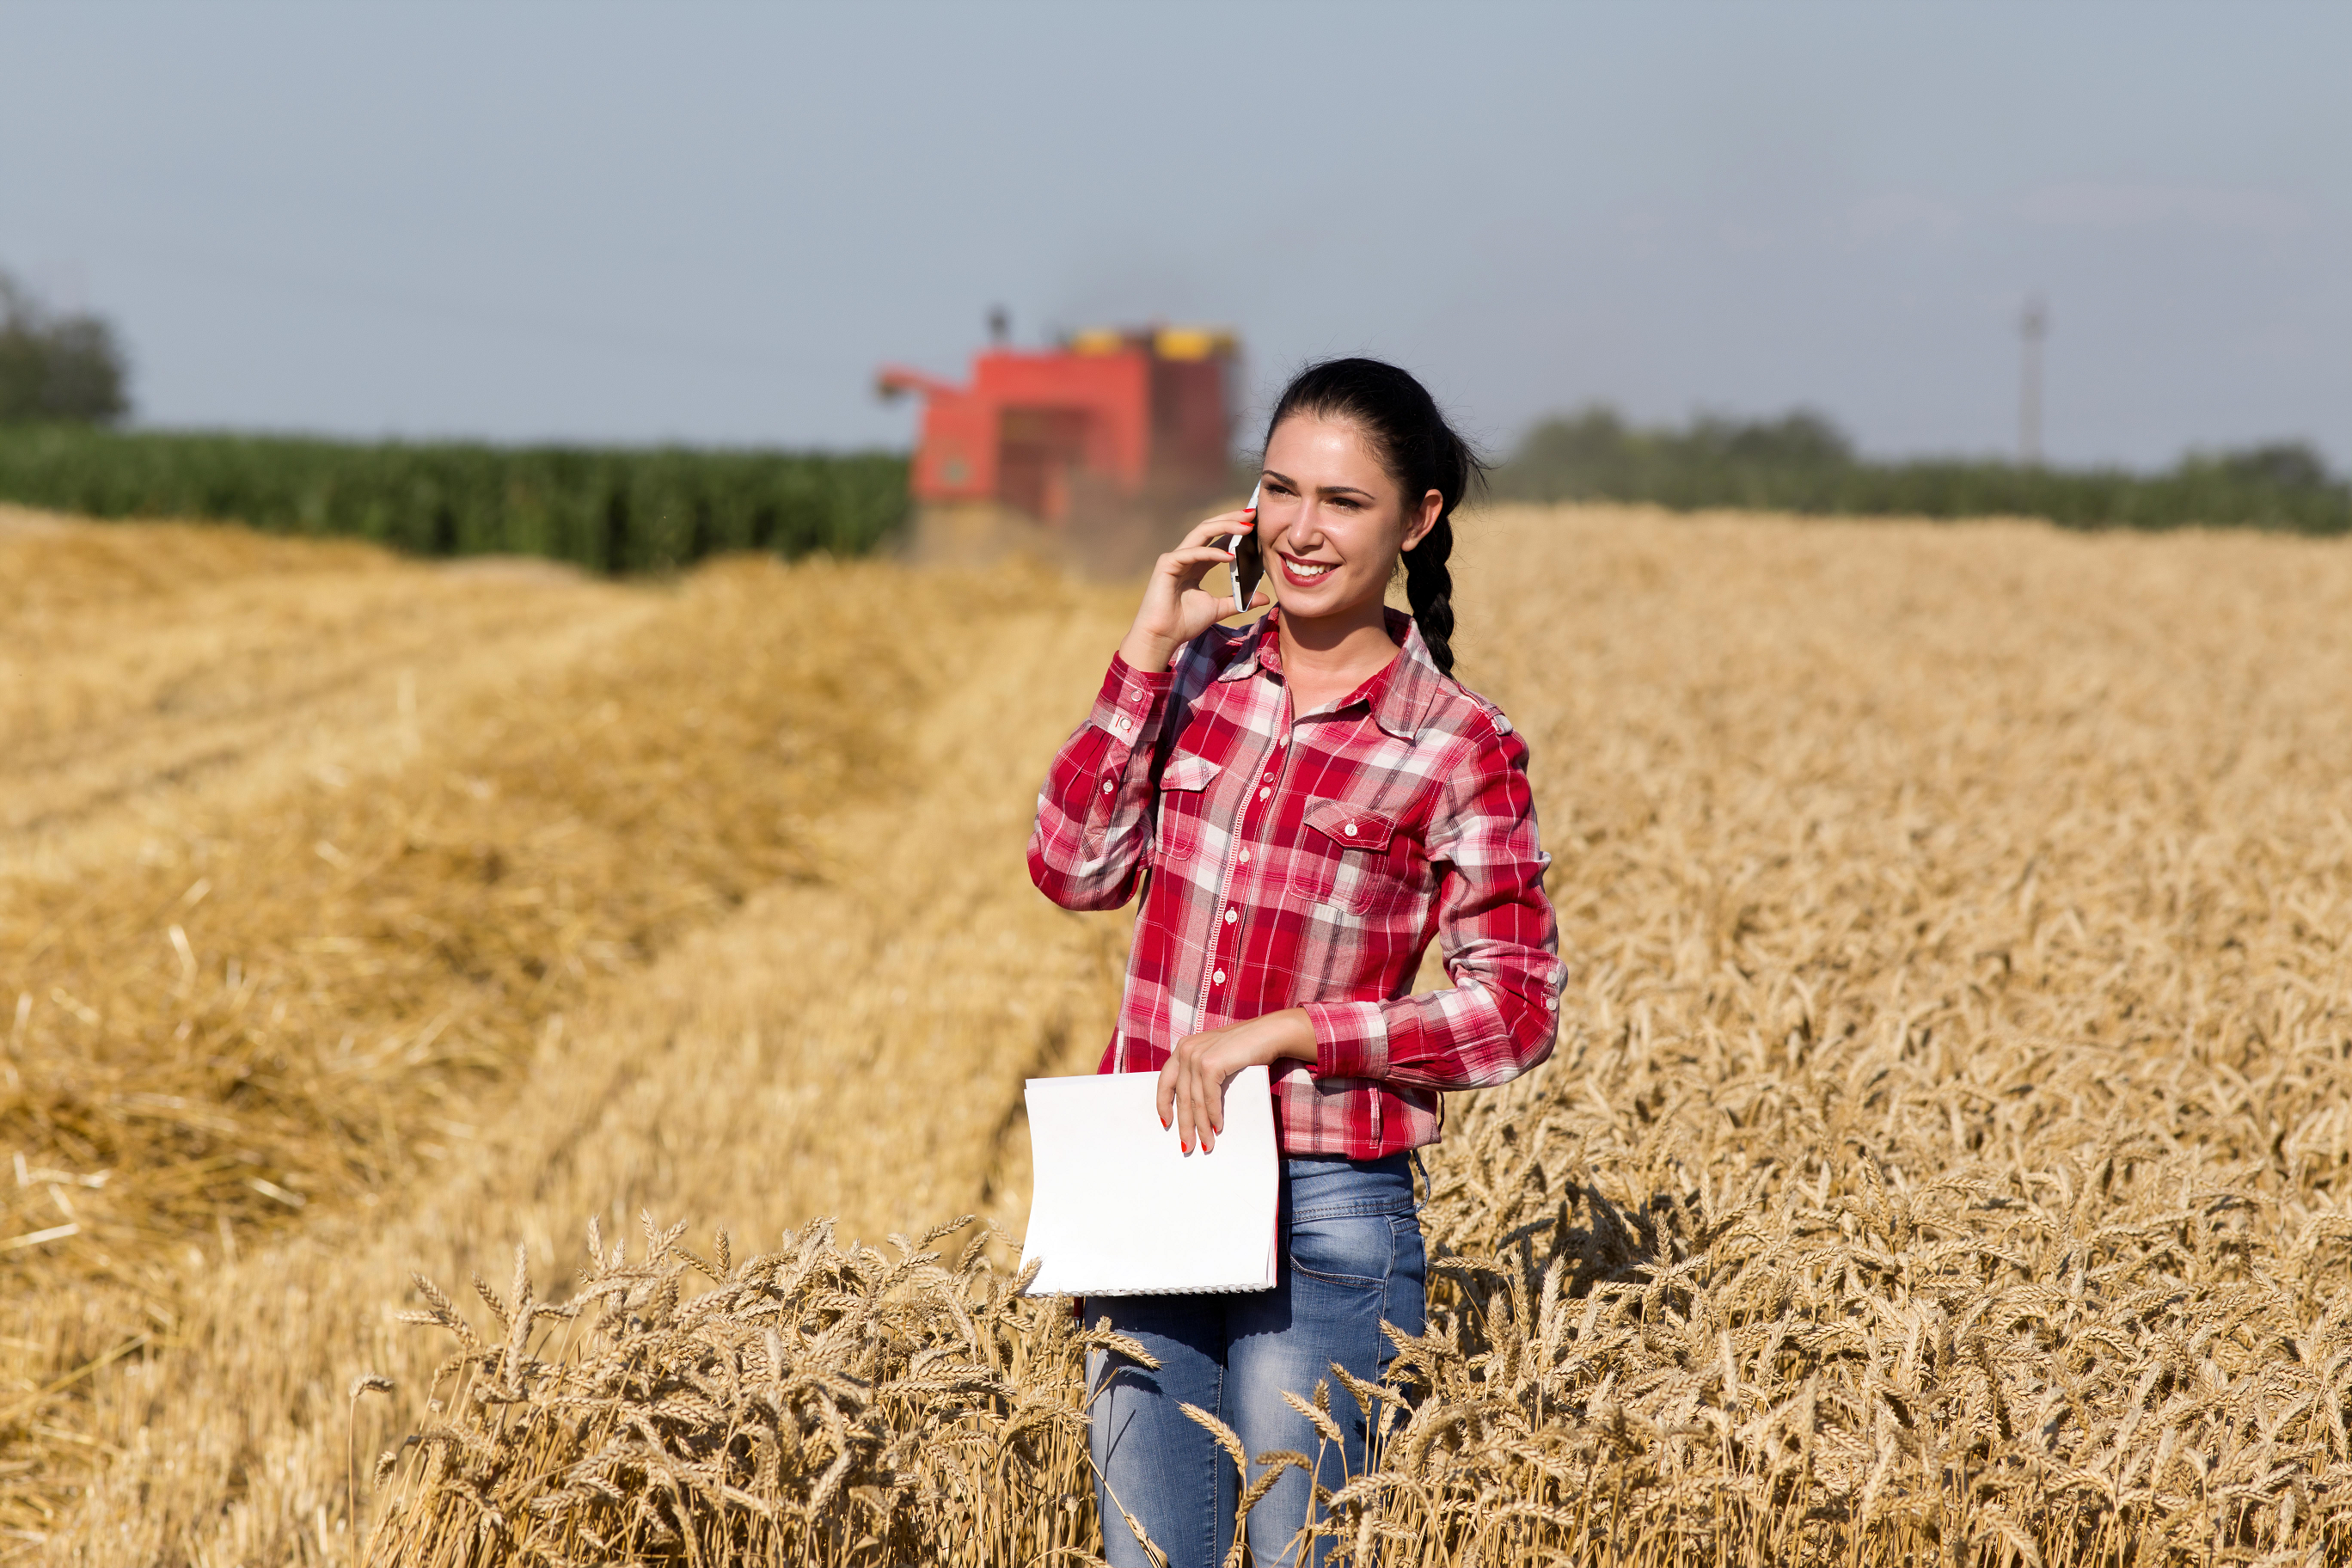 Farmer on the phone in a field